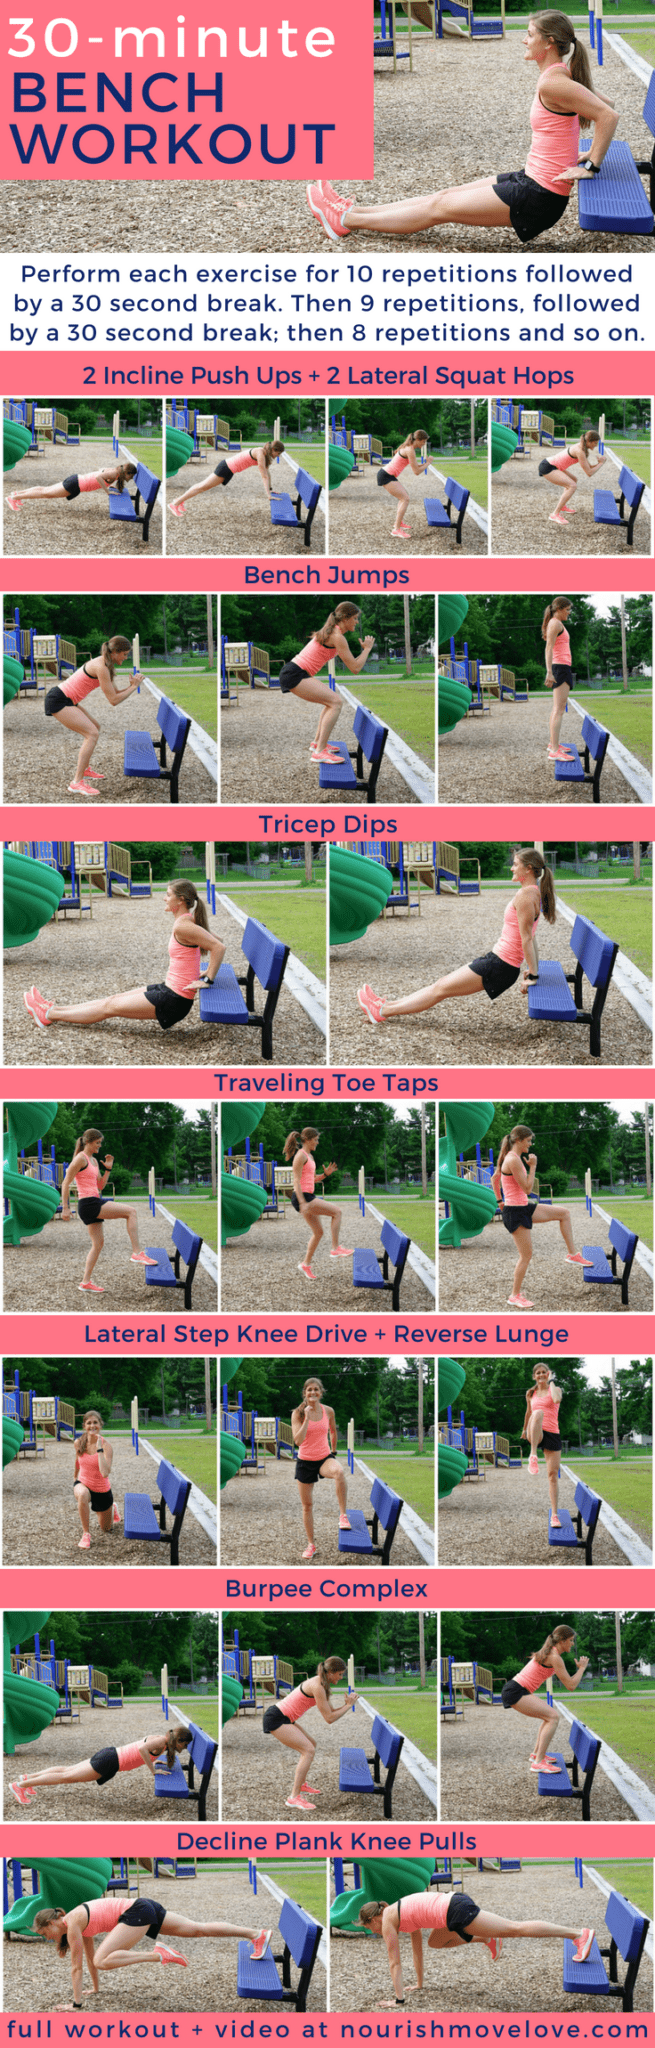 Bodyweight Bench HIIT Workout | www.nourishmovelove.com